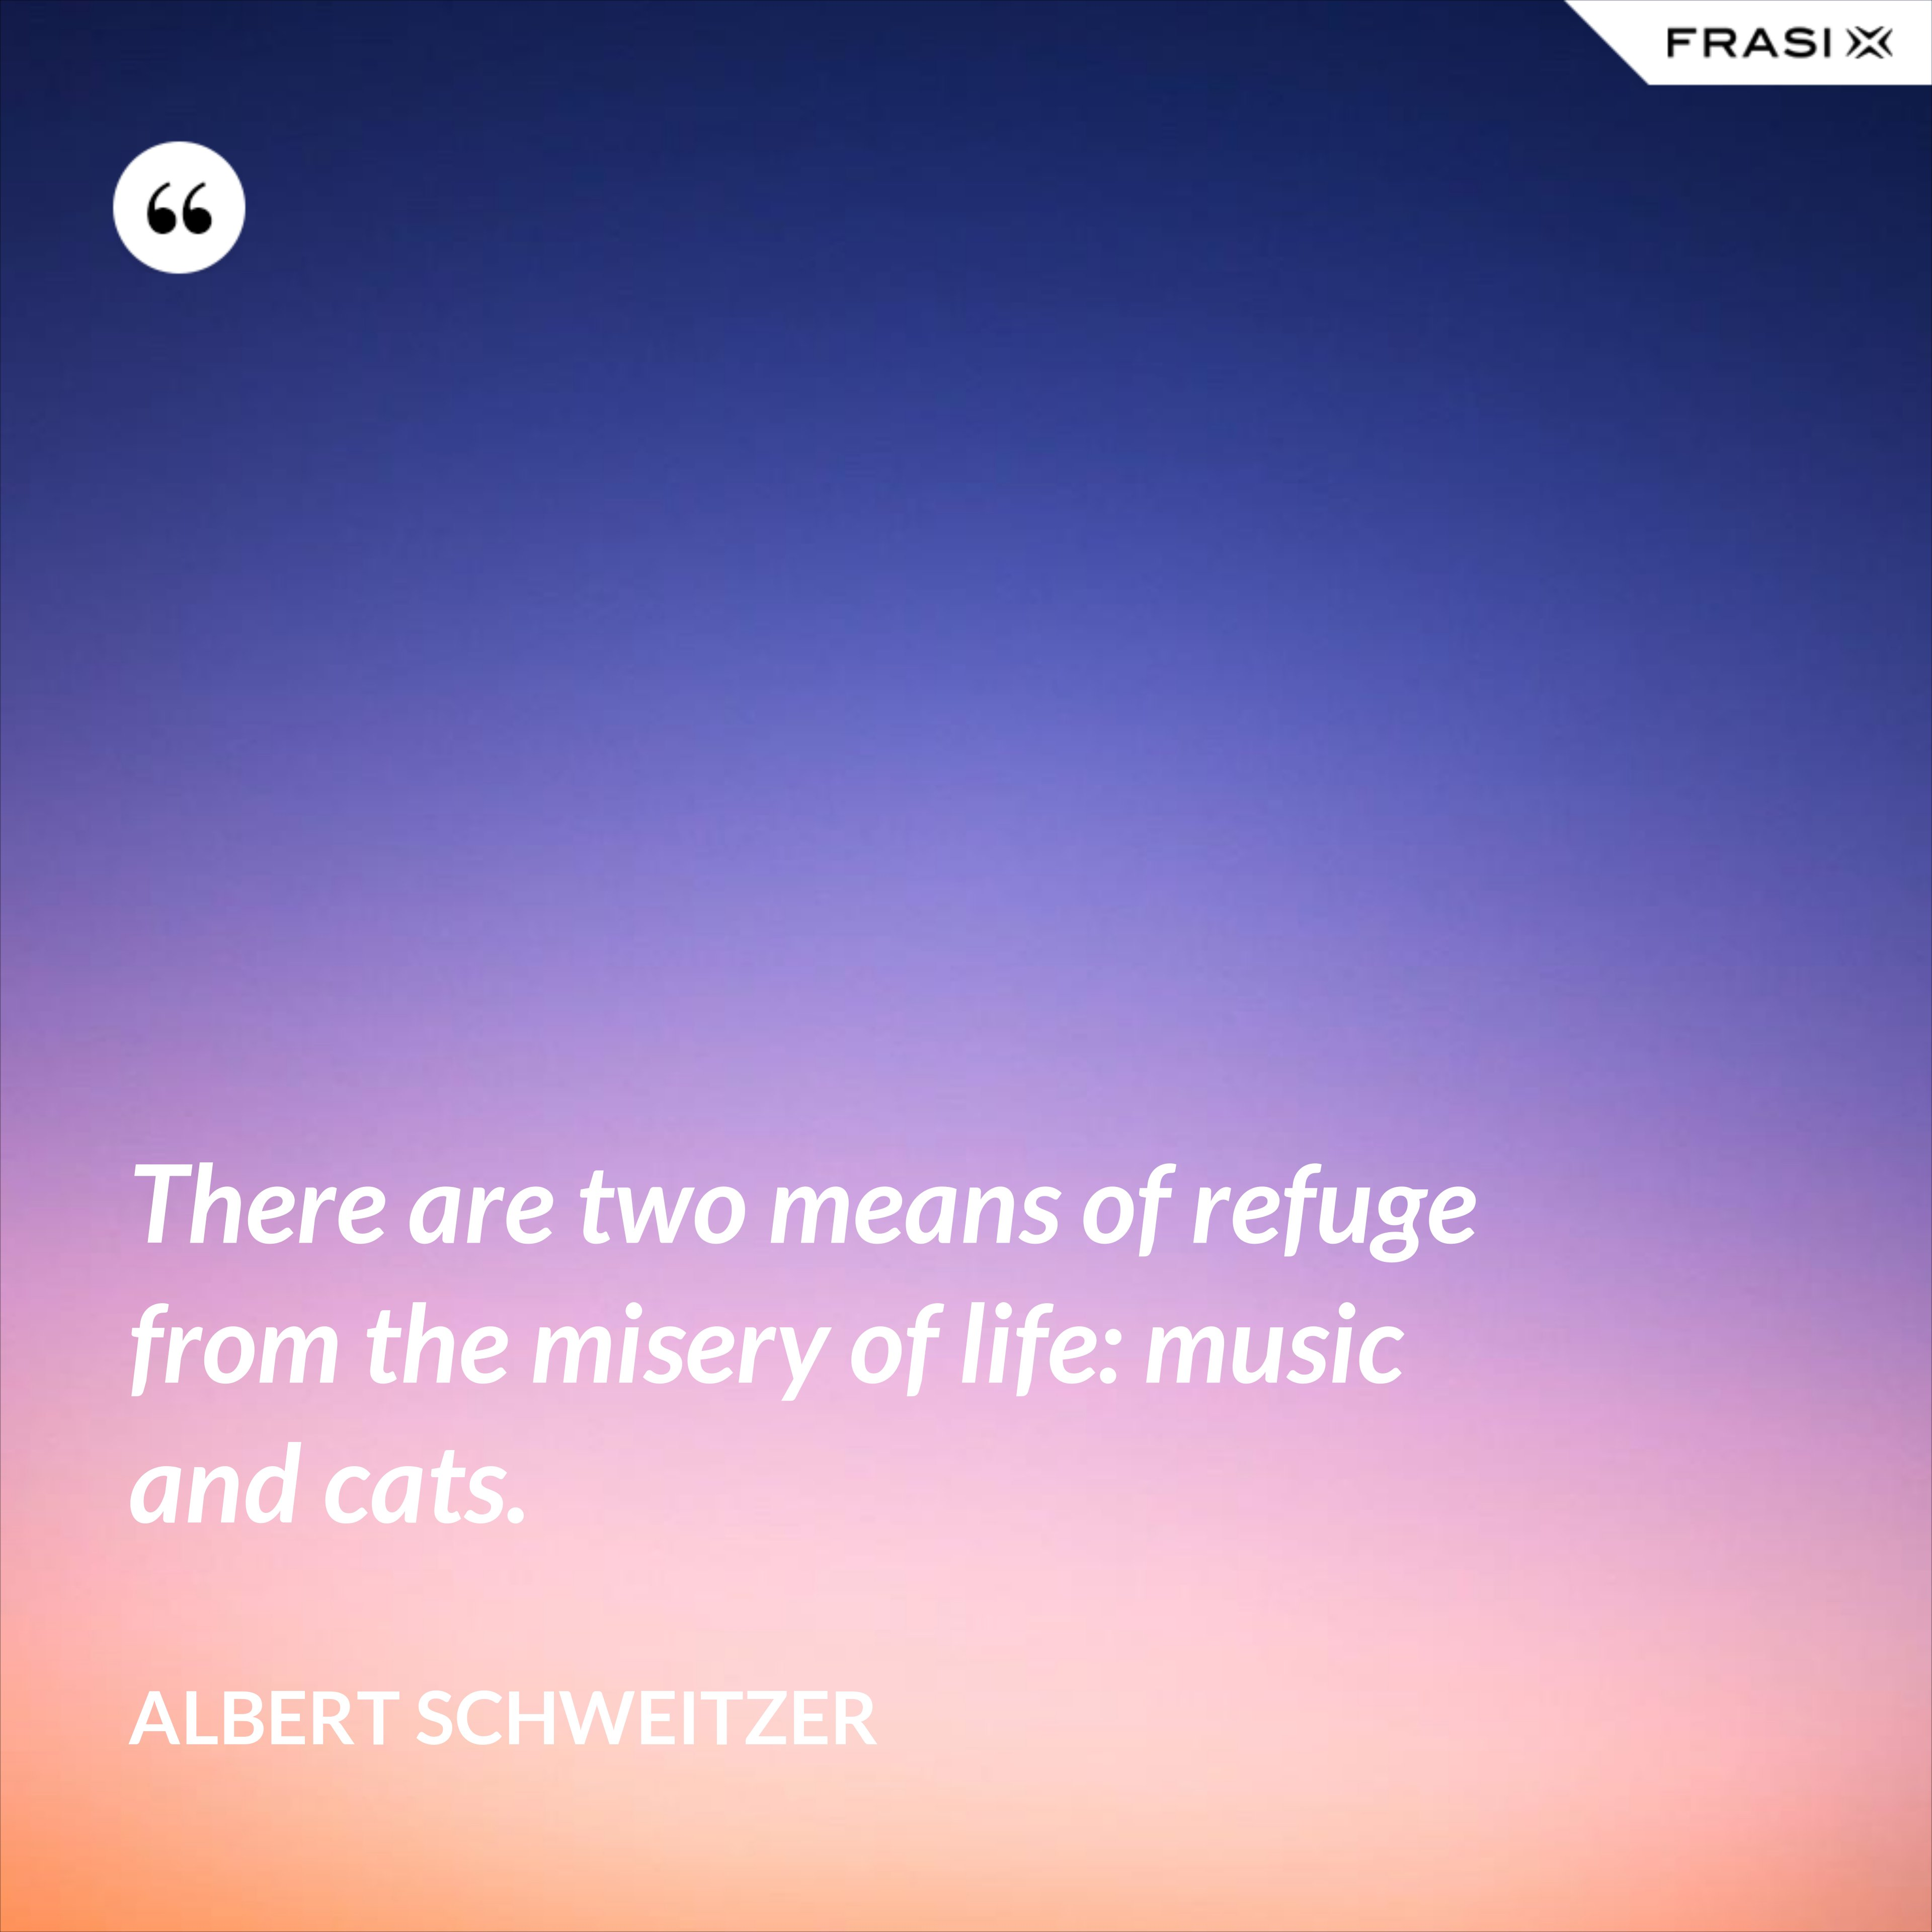 There are two means of refuge from the misery of life: music and cats. - Albert Schweitzer